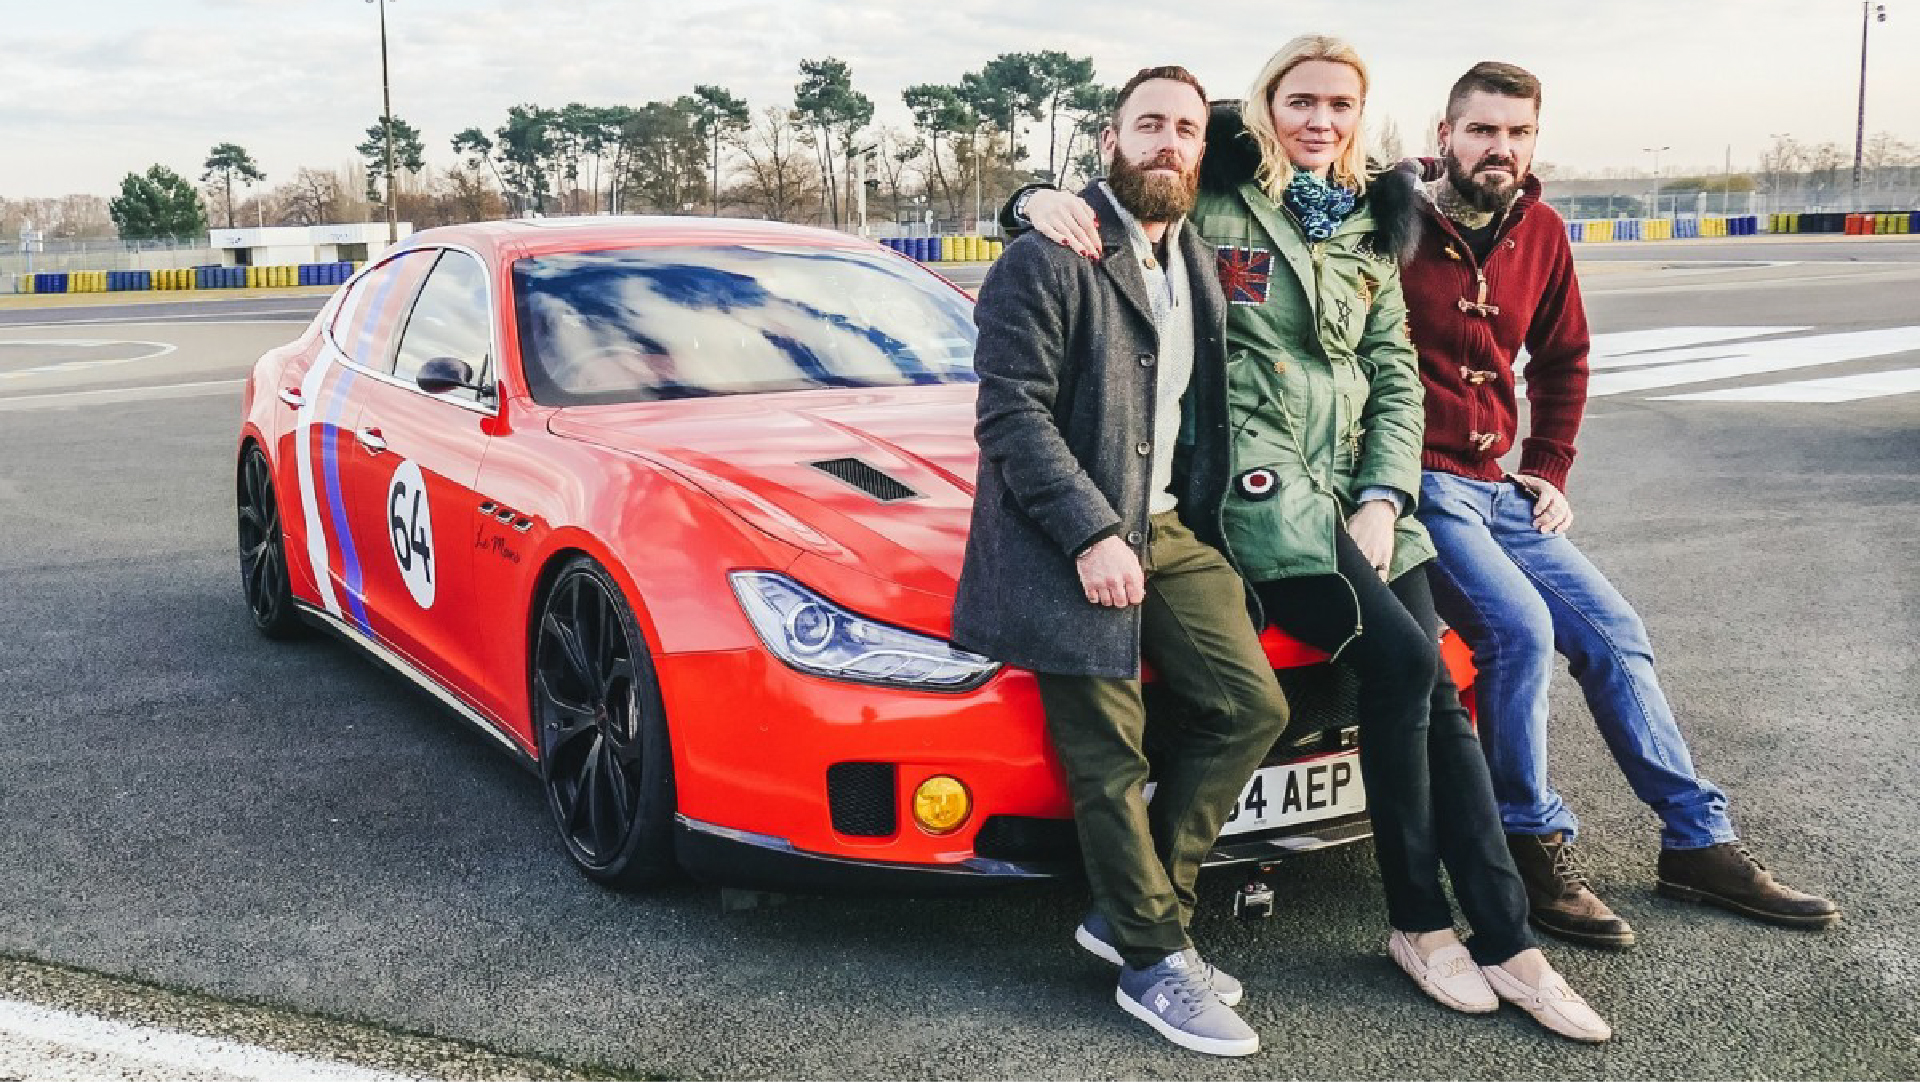 supercar megabuild - shane, jodie and dan sat on the front of red maserati car